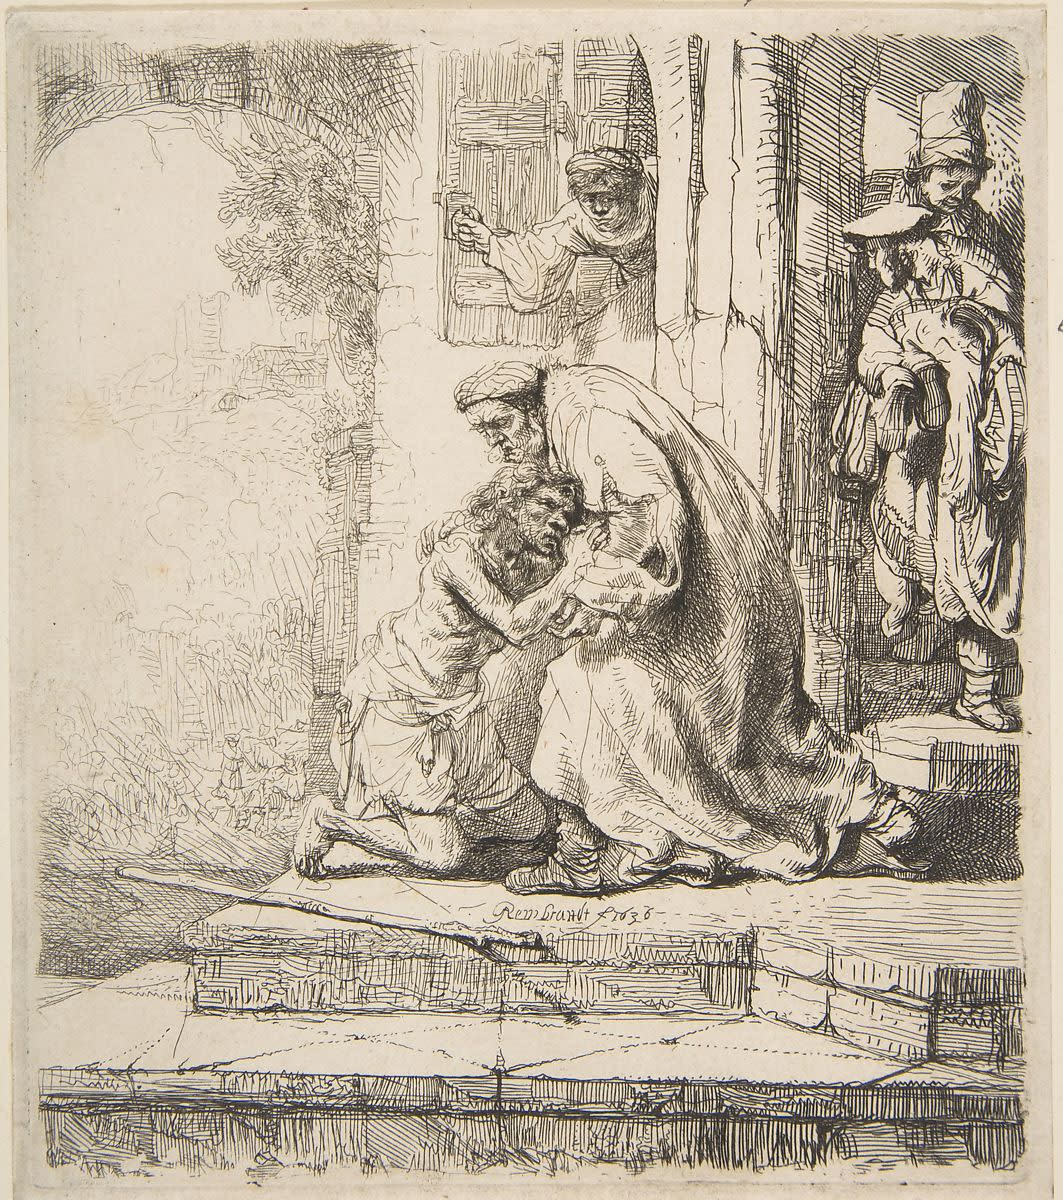 Rembrandt van Rijn (1606-1669) The Return of the Prodigal Son 1636 Etching on paper 22 x 24 cm Ben Uri Collection To see and discover more about this artist click here